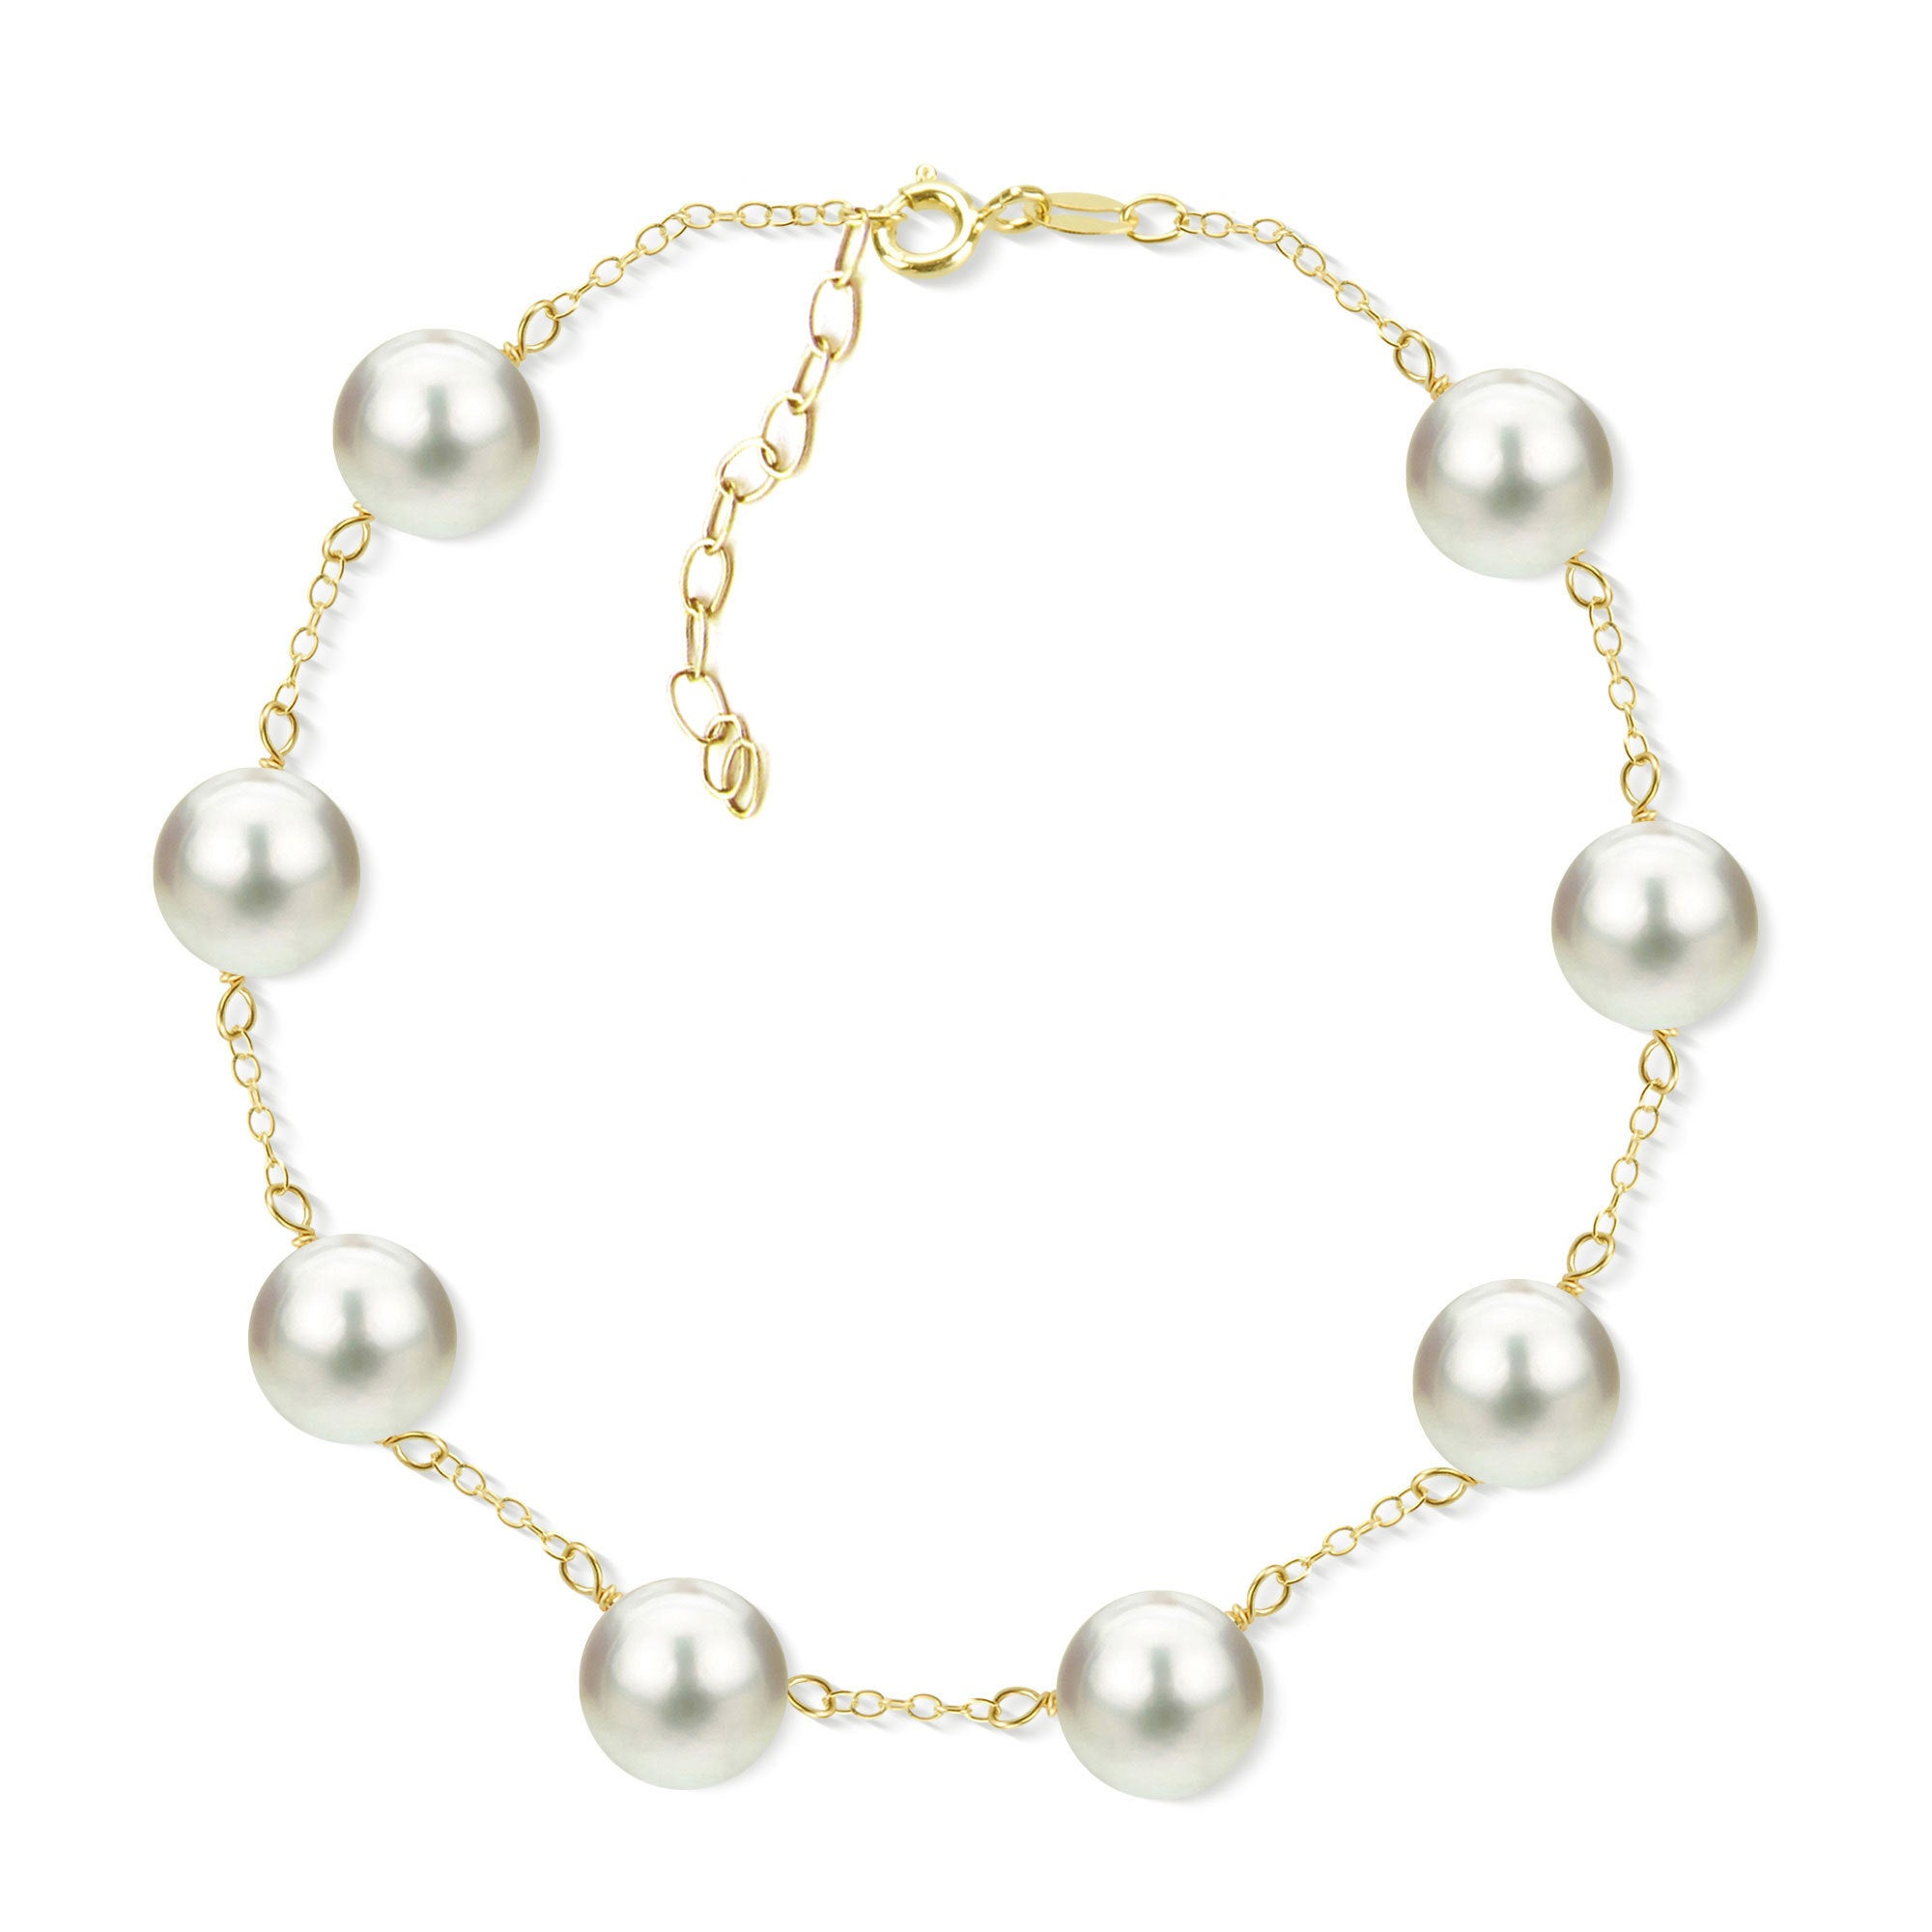 c4e90f2d5810e DaVonna 18k Yellow Gold Plated Silver 8-8.5 mm Freshwater Cultured Tin Cup  Pearl Bracelet 7.5 inch + 1 inch Extension.